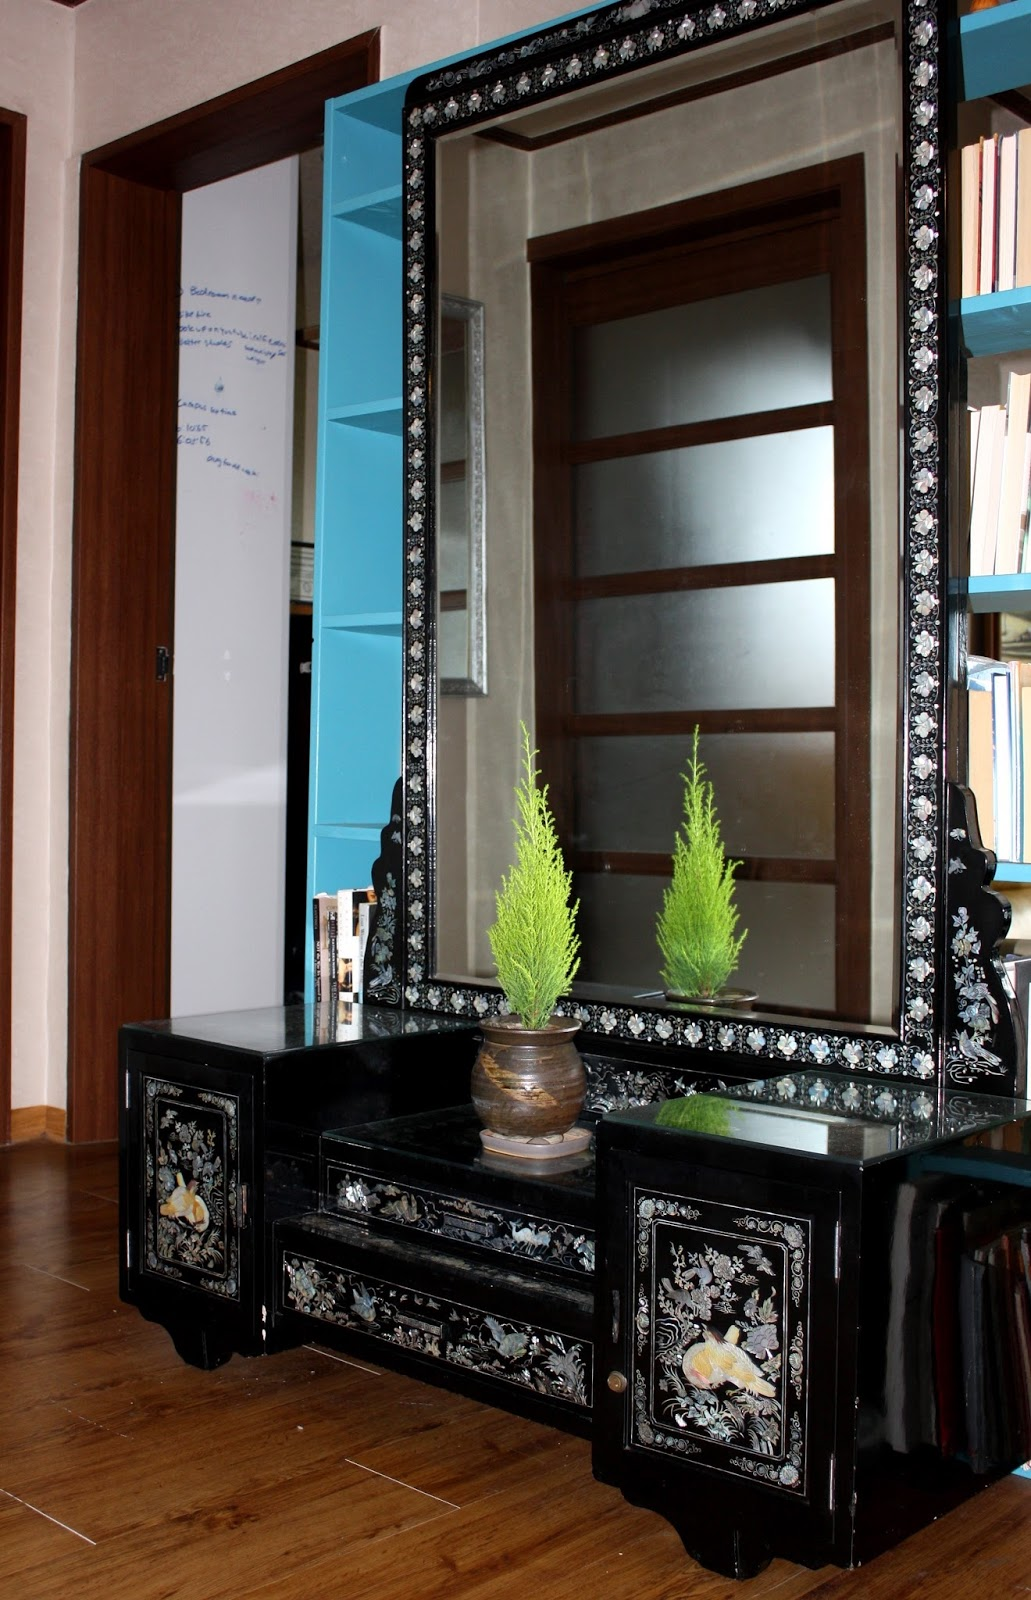 Black Lacquer Mirror And Vanity Stand With Inlaid Mother Of Pearl Vintage Korean Furniture 40 Years Old I Found It In The Trash